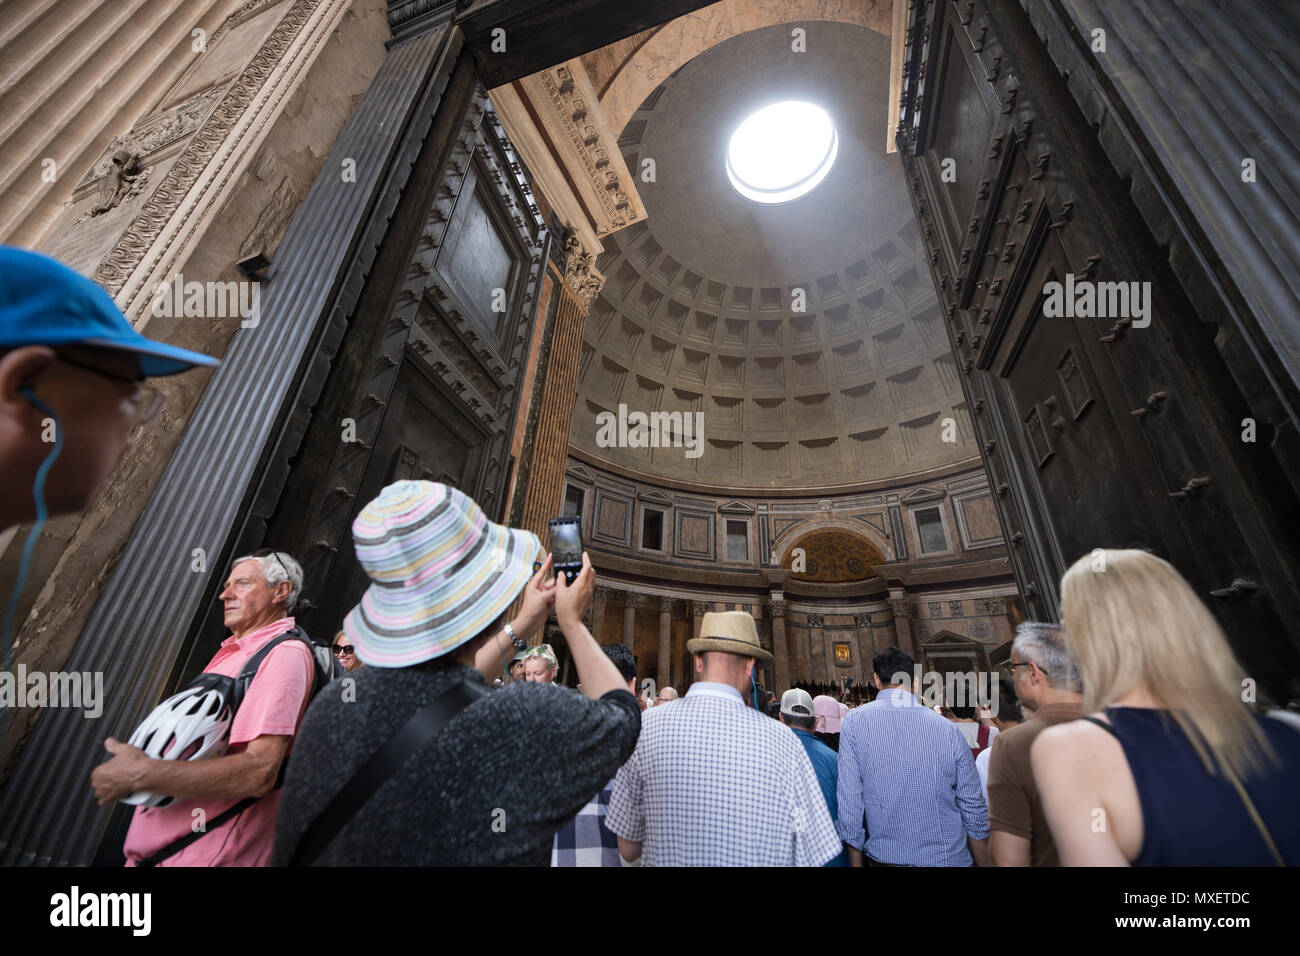 Rome Pantheon interior, light true the hole on dome, tourists visiting Stock Photo